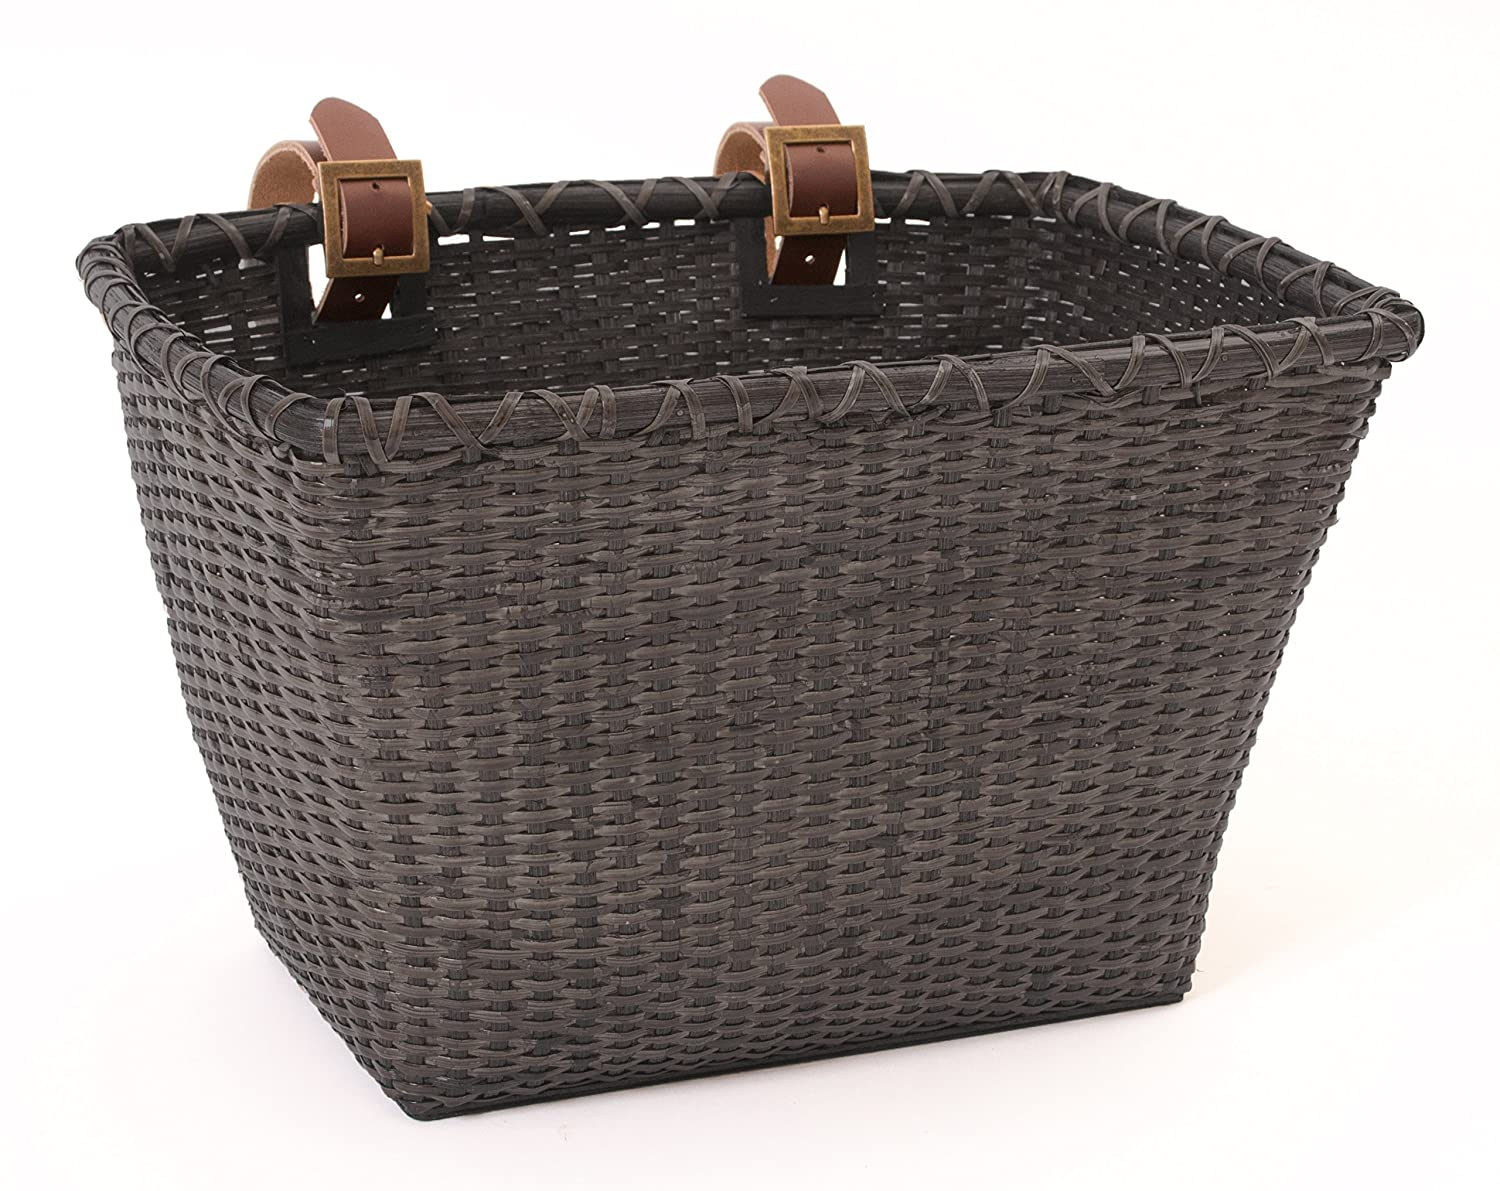 Retrospec Bicycles Cane Woven Rectangular Toto Basket with Authentic Leather Straps and Brass Buckles Xander Bicycle Corporation 1914